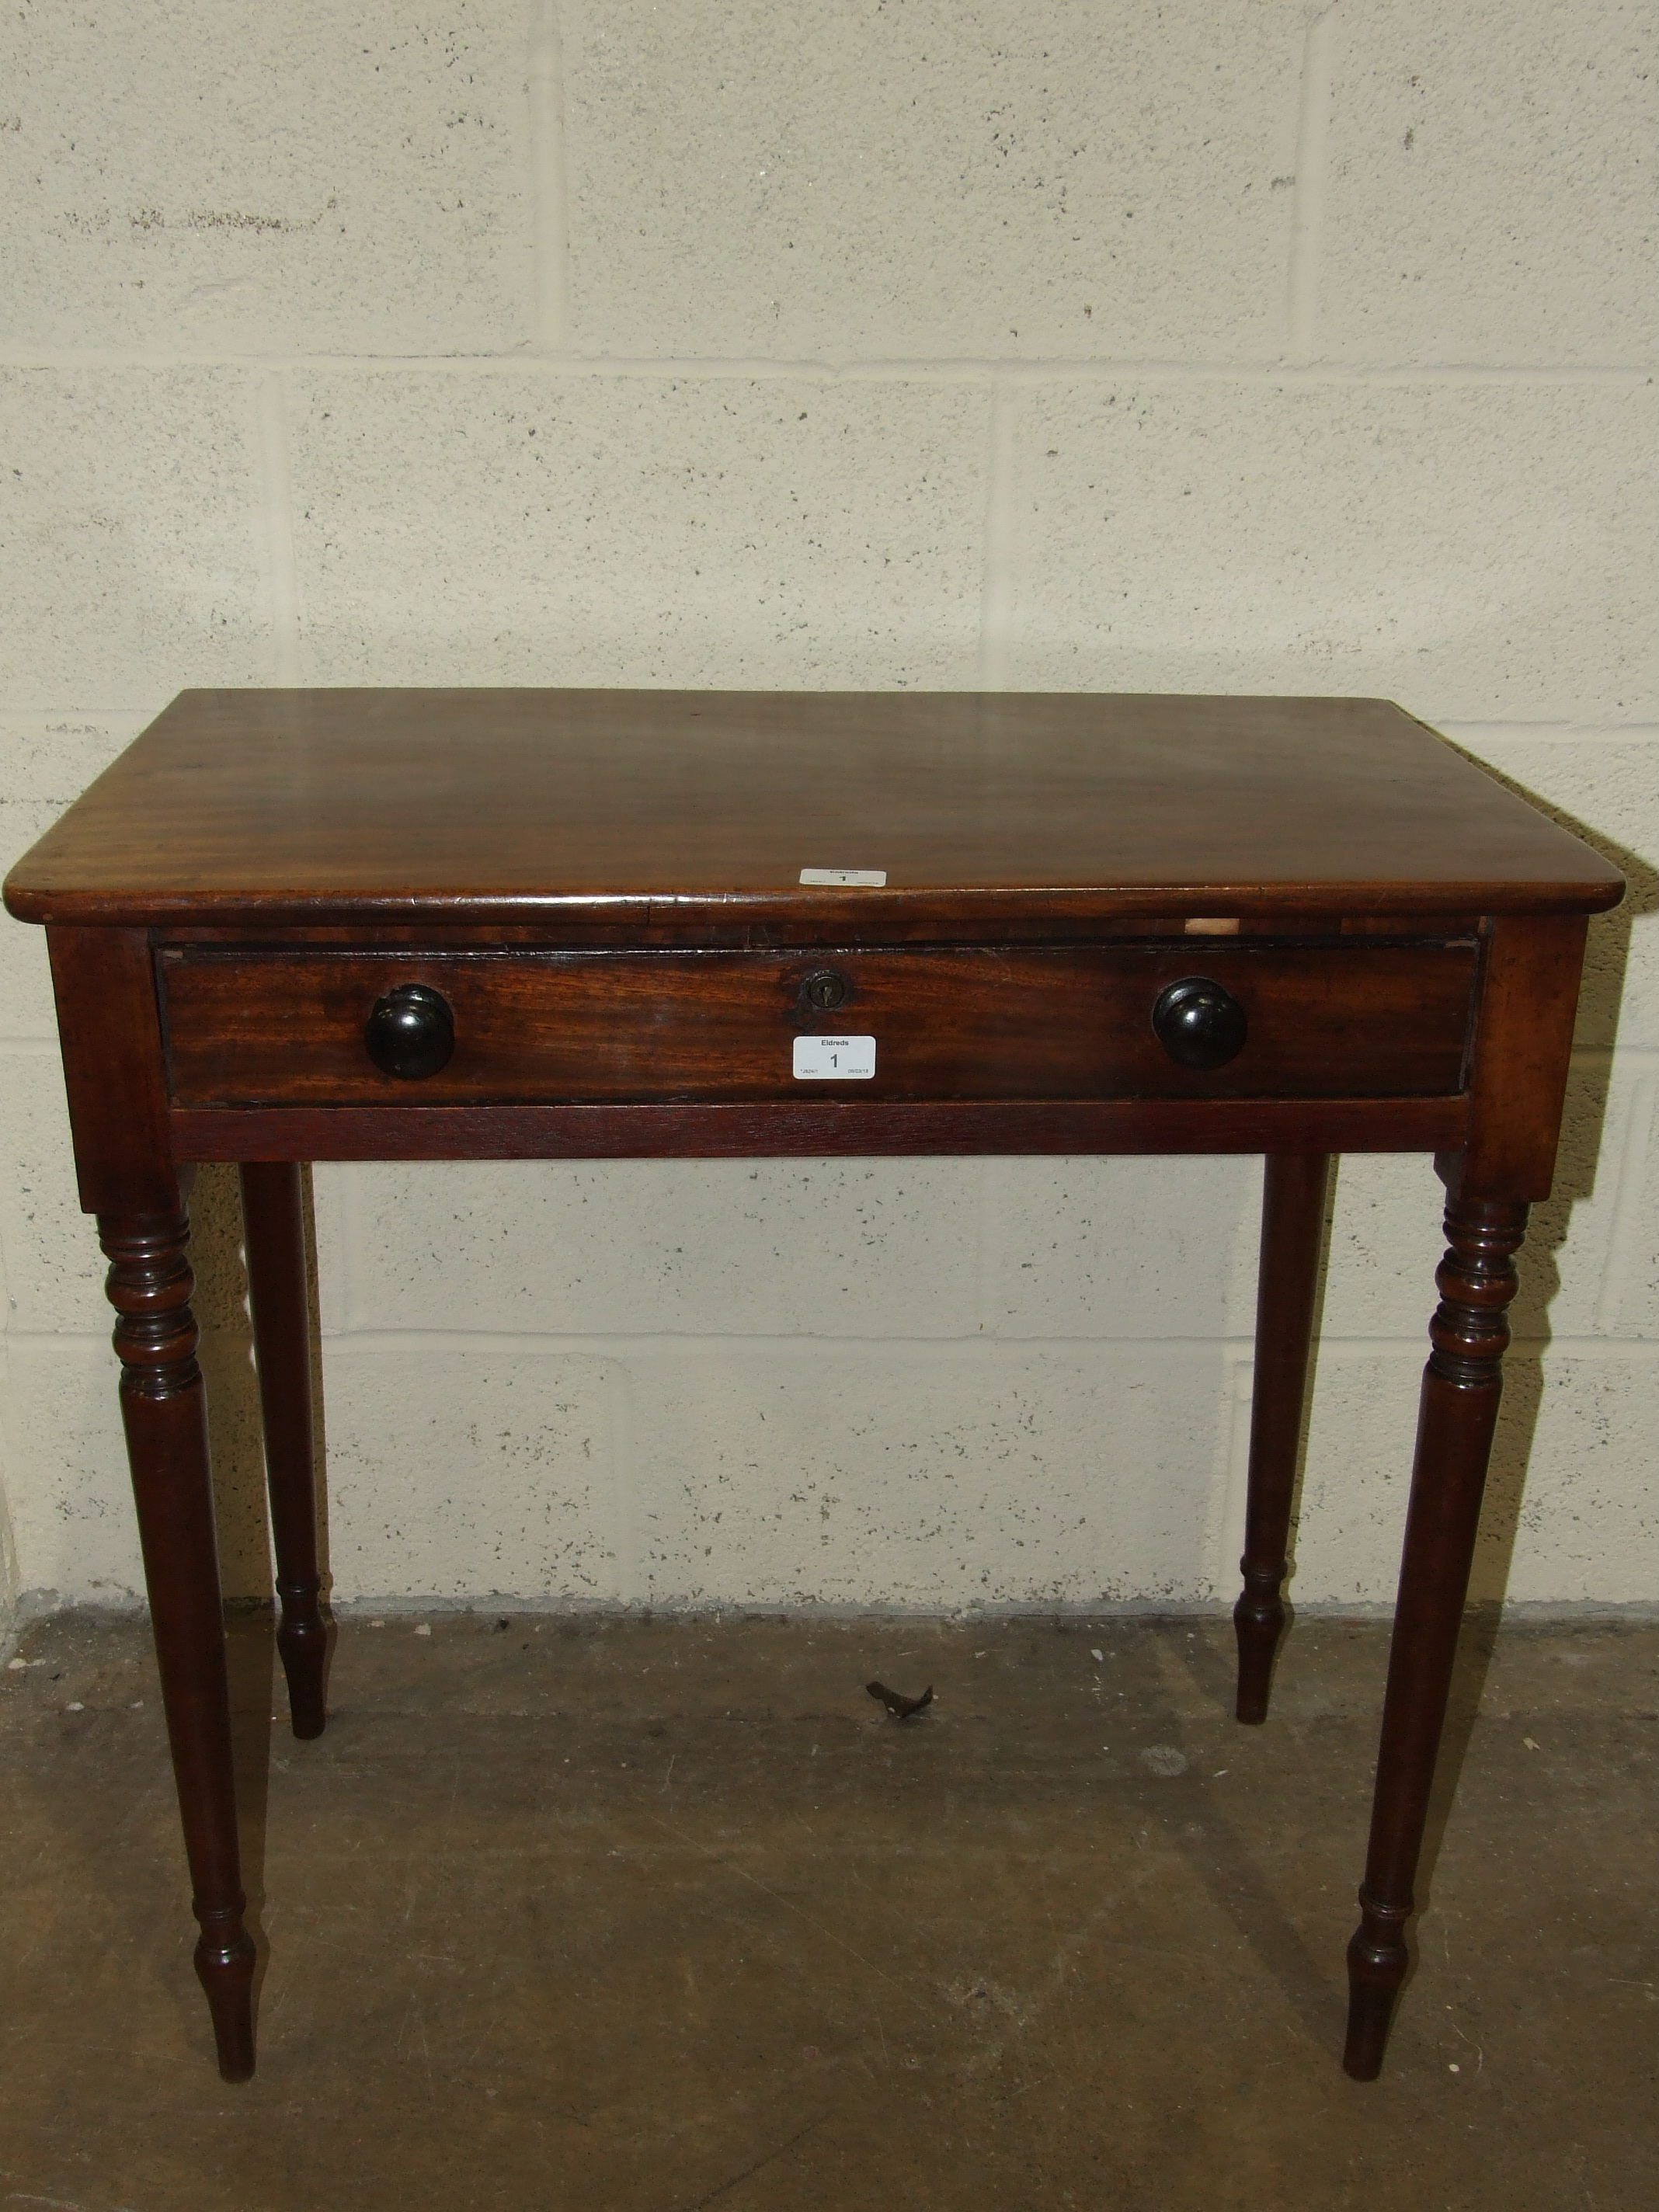 Lot 1 - A late 19th century mahogany hall table, the rectangular top above a frieze drawer, on turned